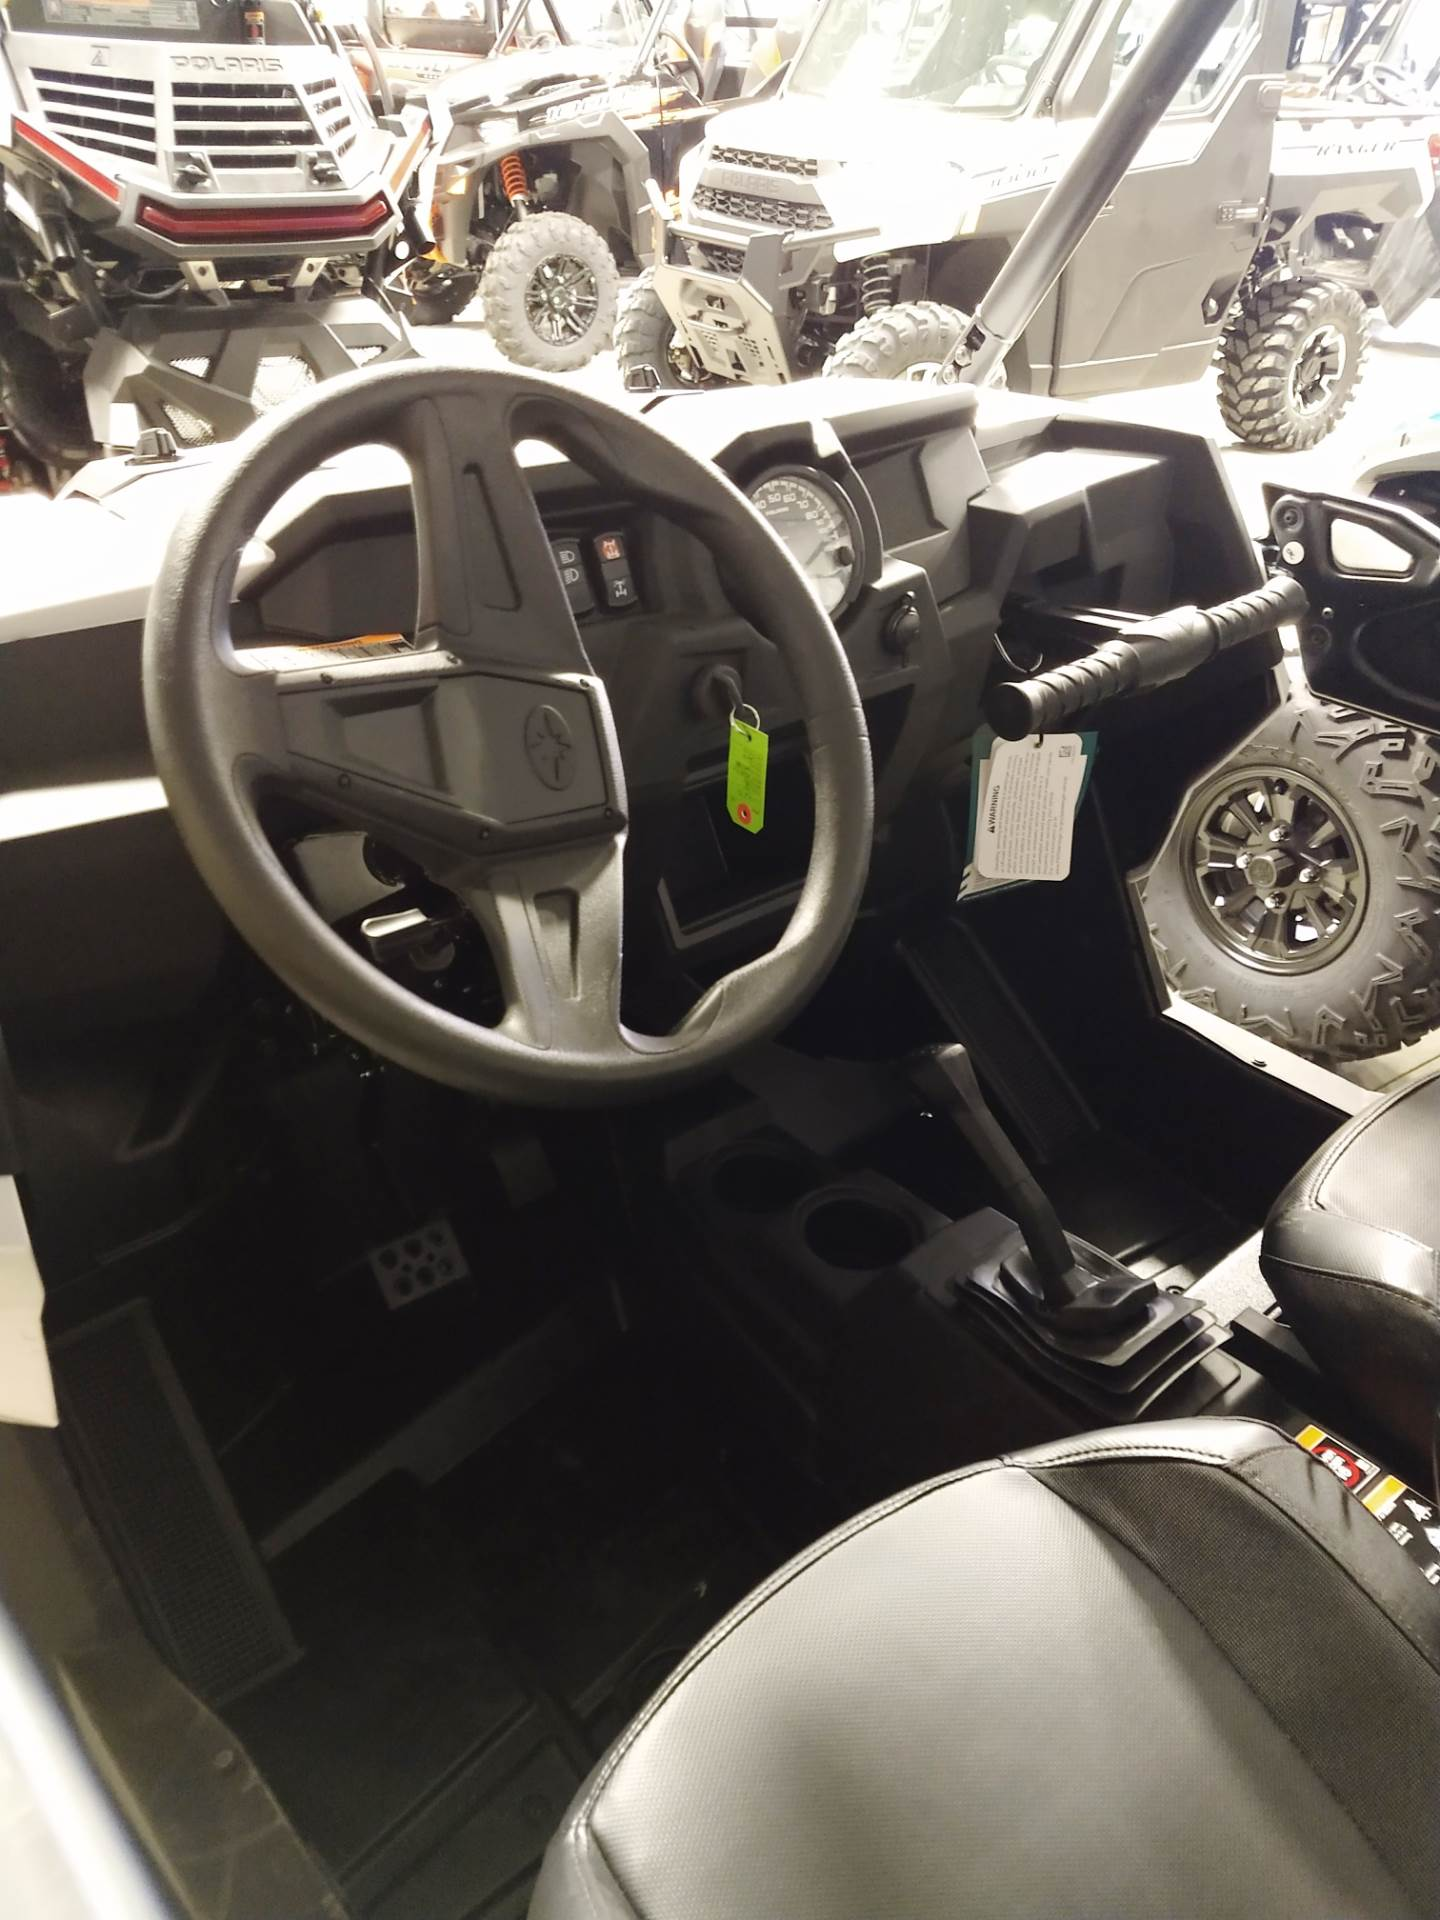 2019 Polaris RZR S 900 in Ottumwa, Iowa - Photo 9